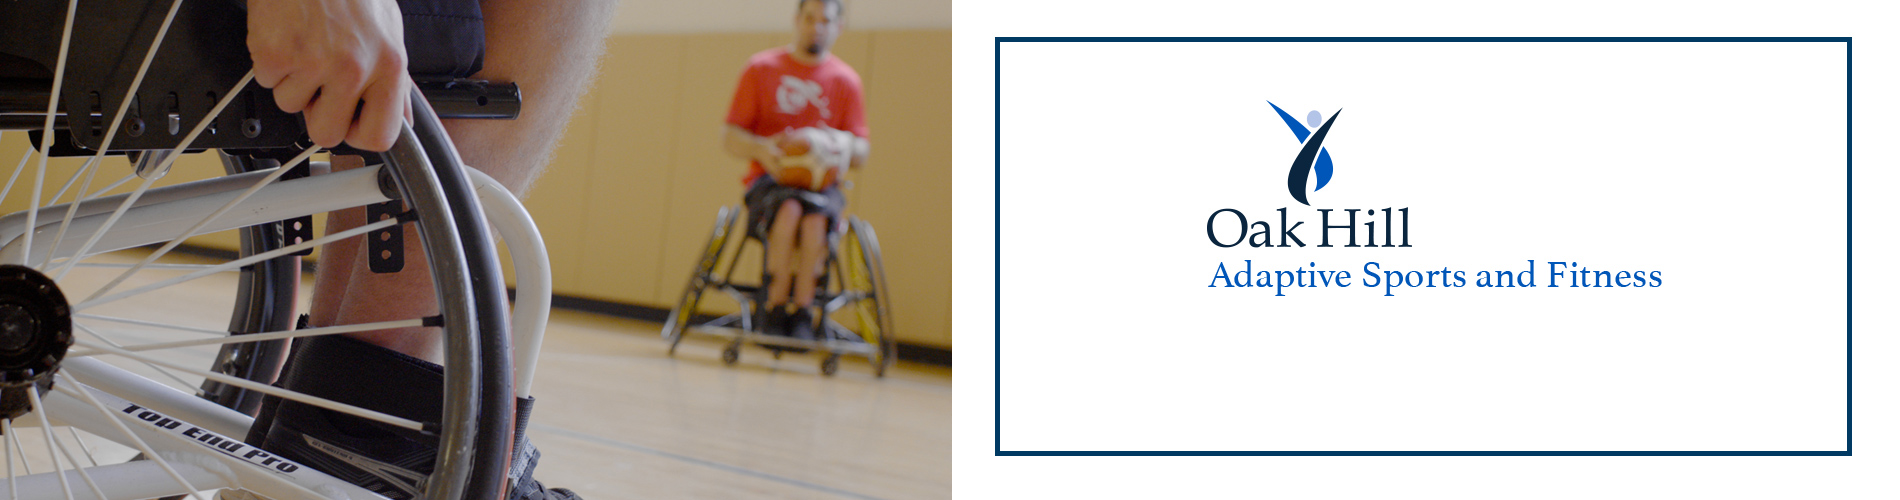 Adaptive Sports and Fitness banner